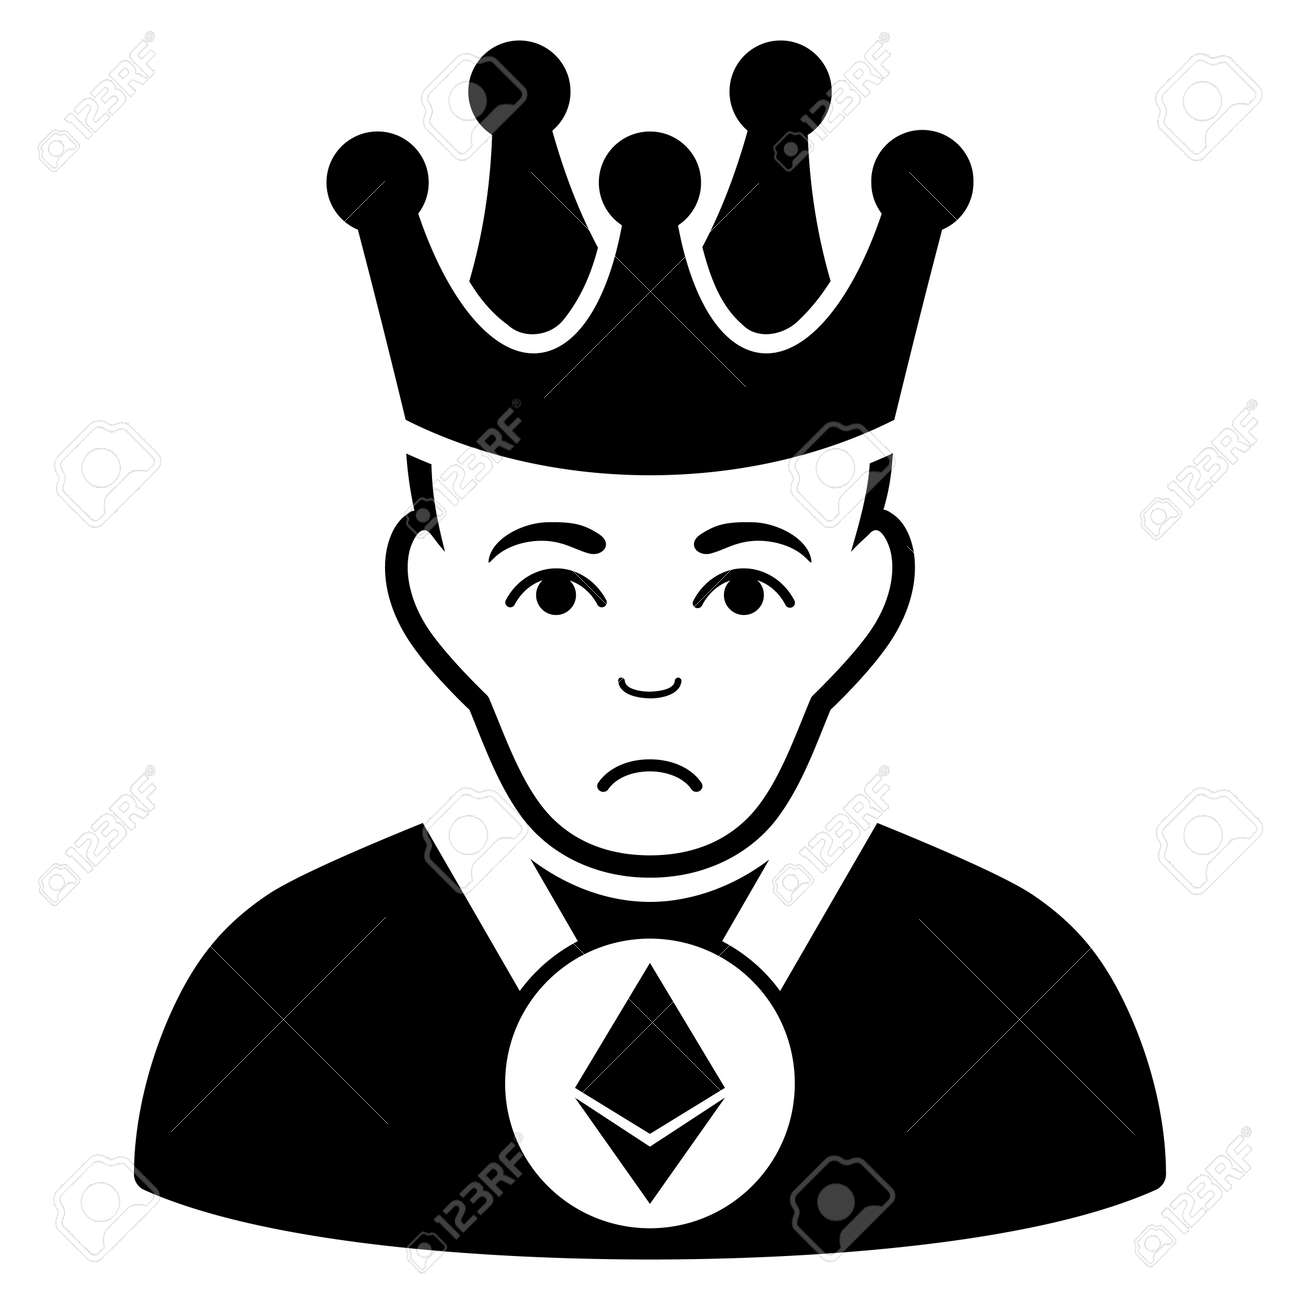 1145268a13d Sad Ethereum Lord vector icon. Style is flat graphic black symbol with  sadness emotion.